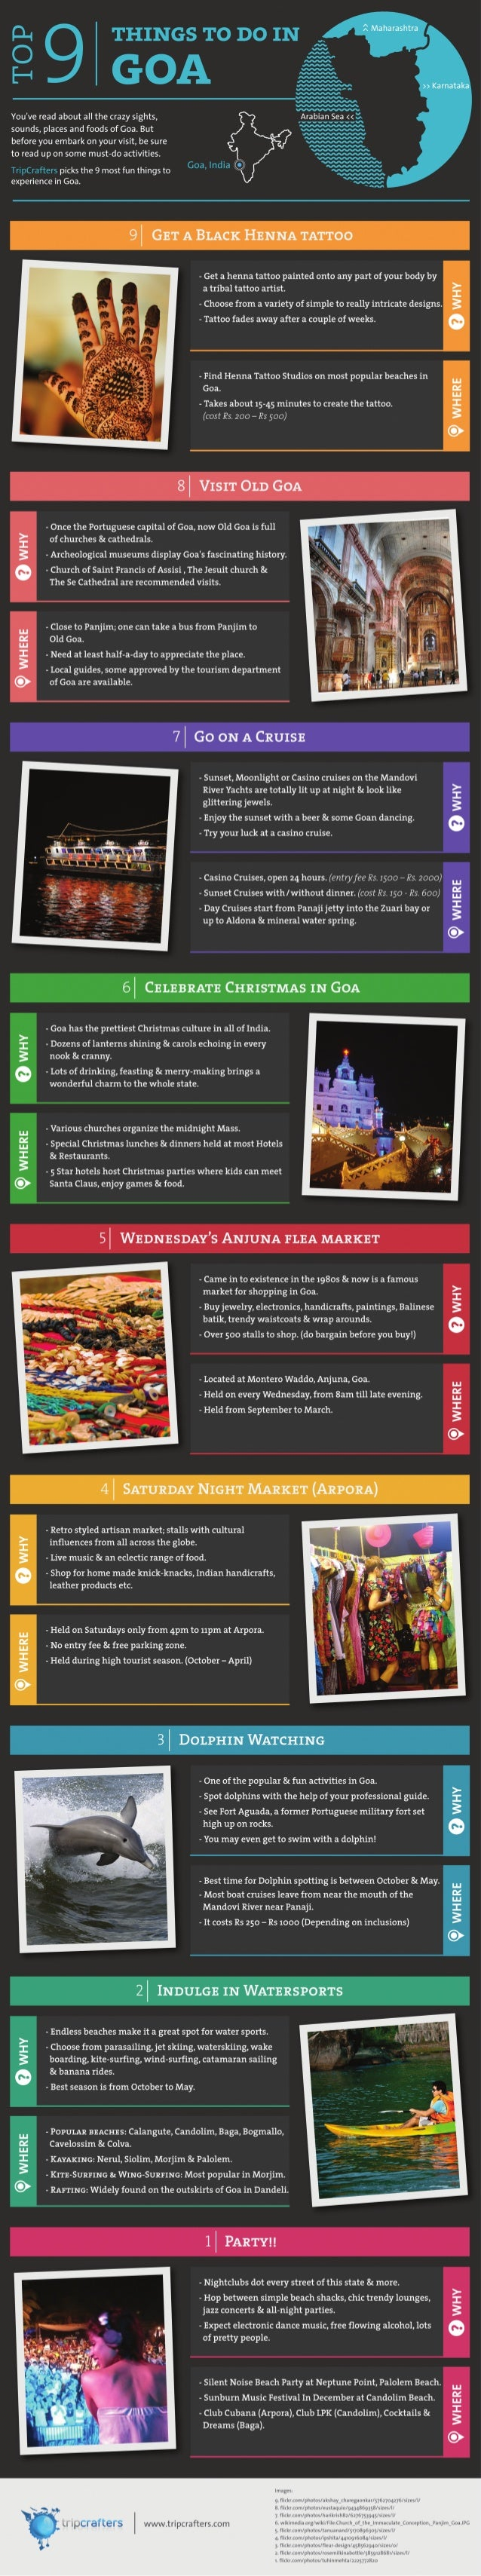 Things to do in Goa, India